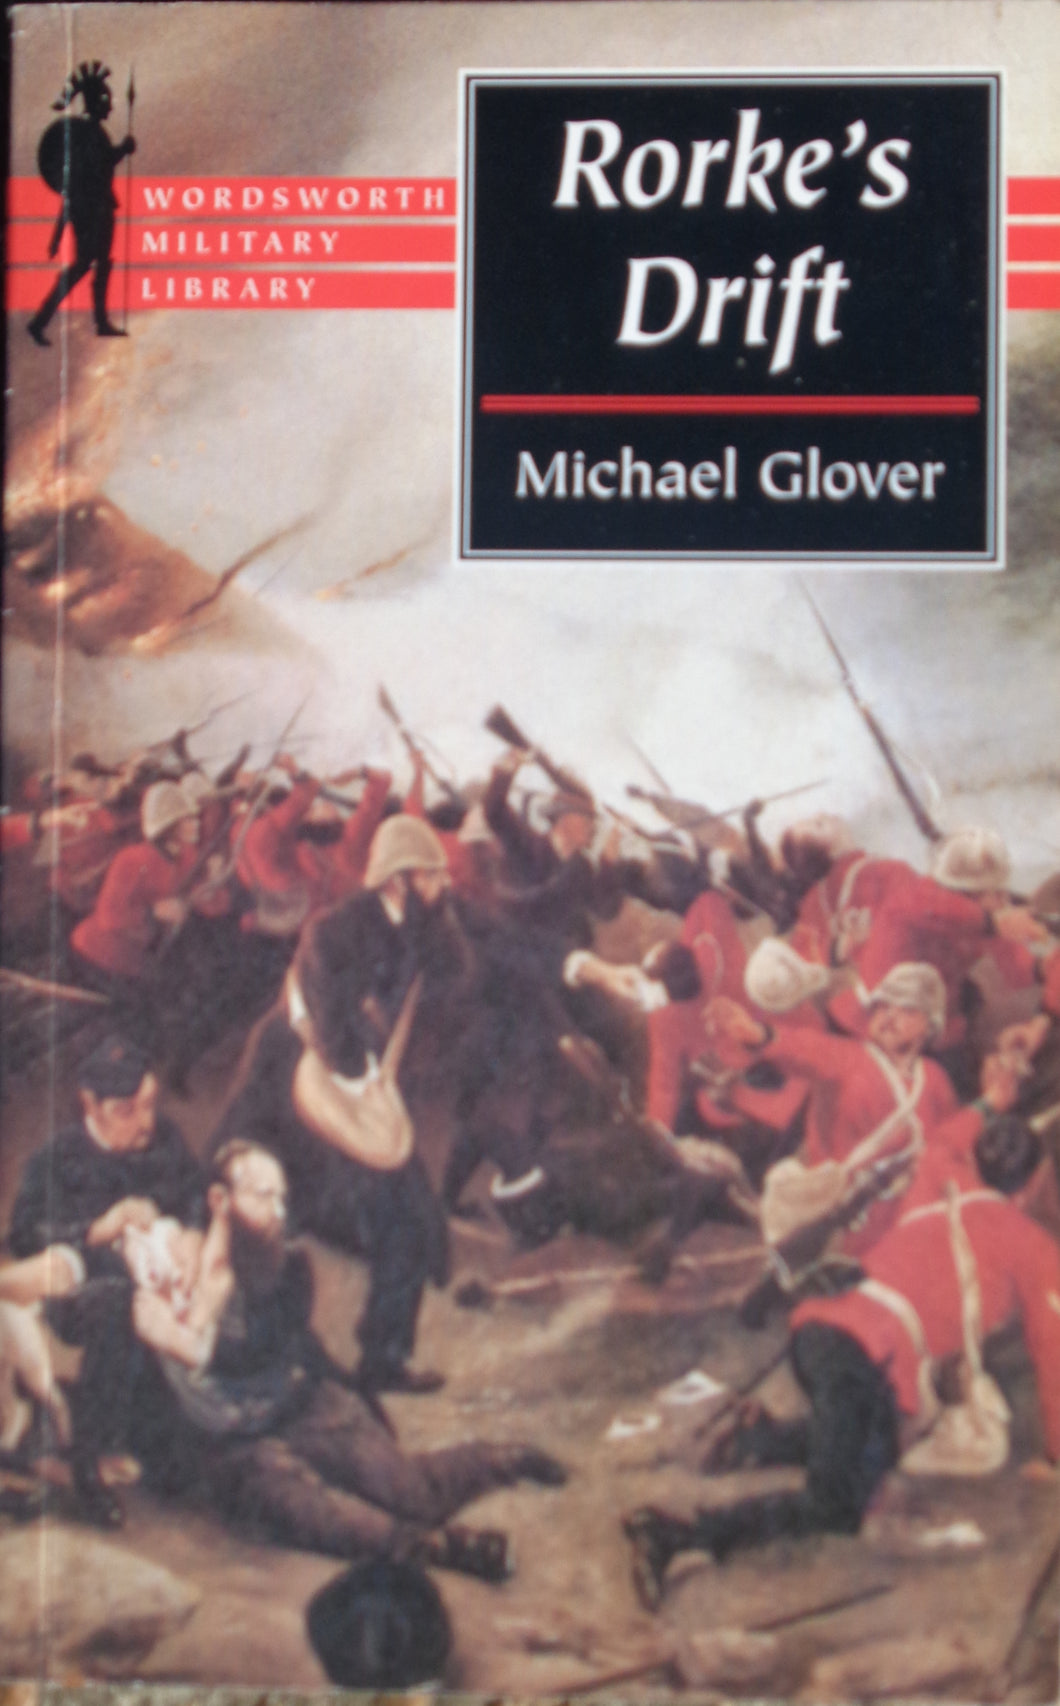 'RORKE'S DRIFT' by Michael Glover